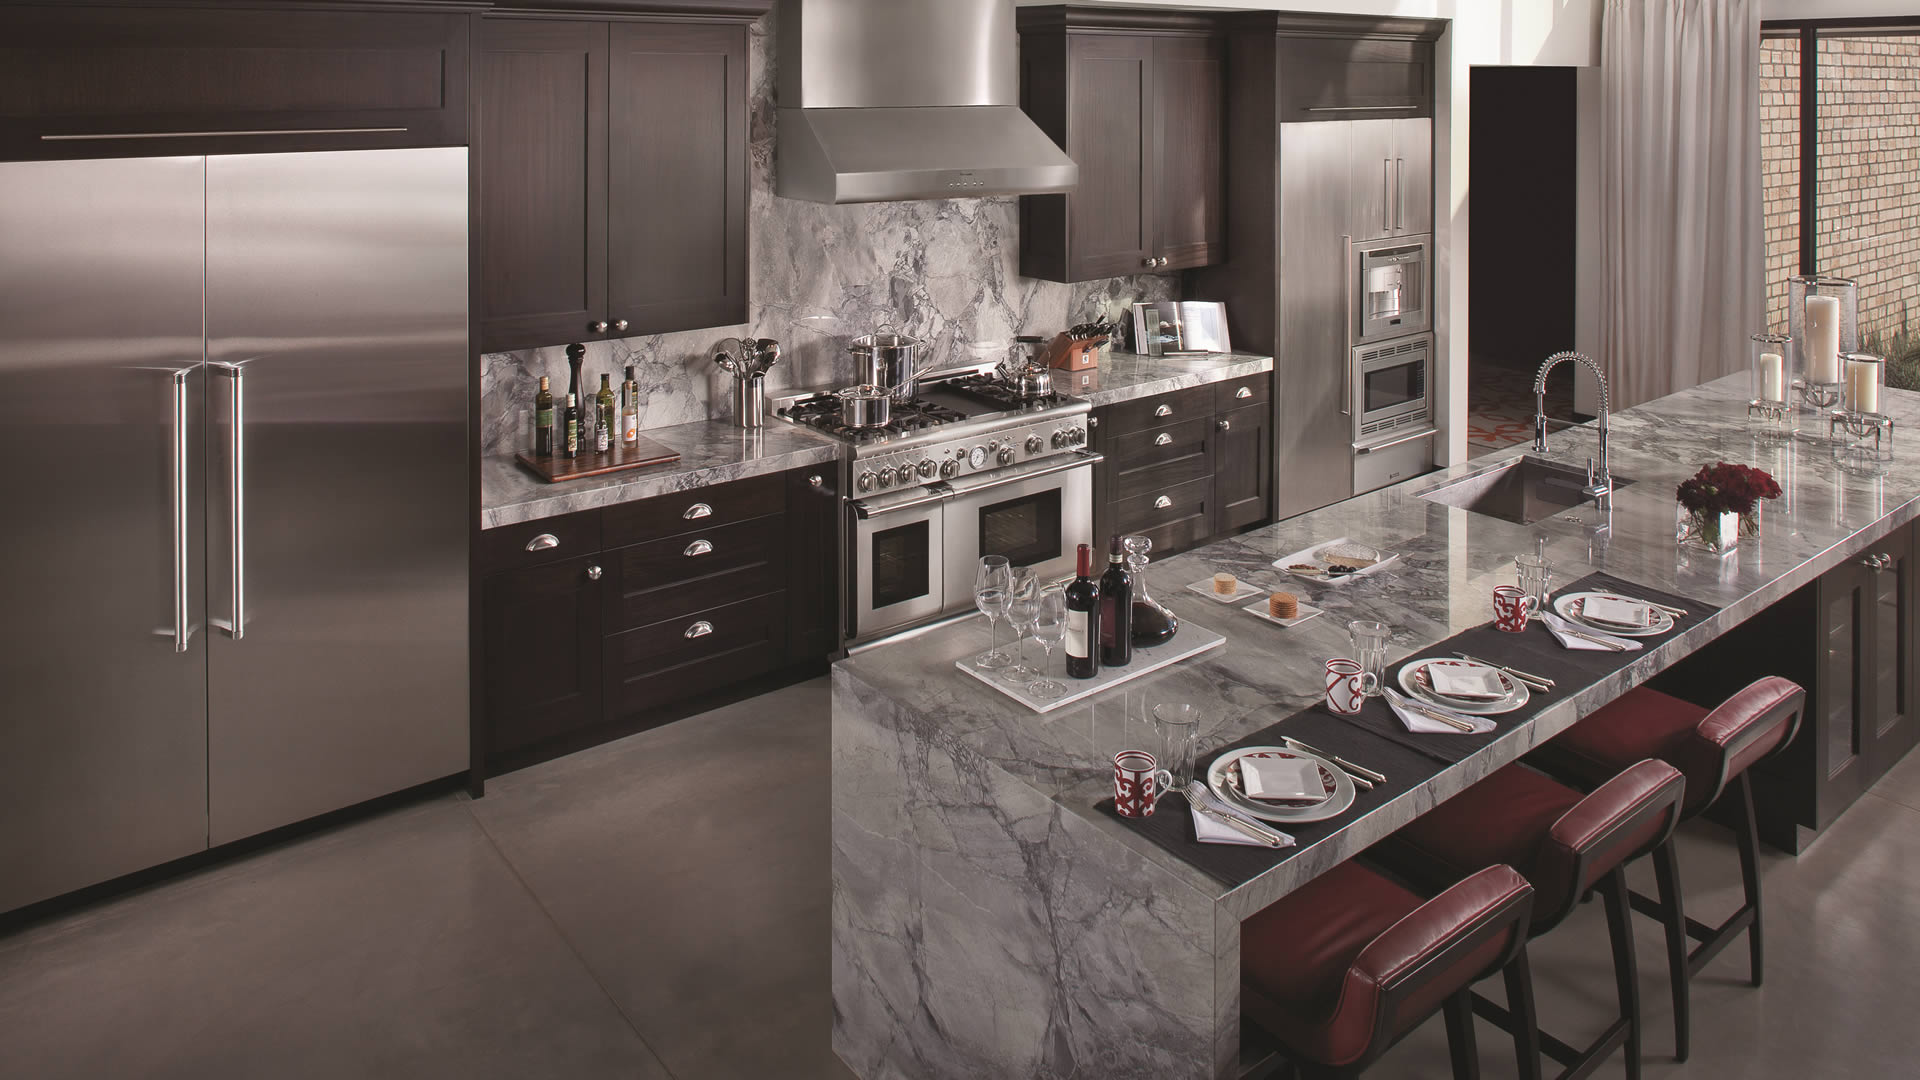 THERMADOR | Fine Luxury Kitchen Appliances - Nordic Kitchens and ...